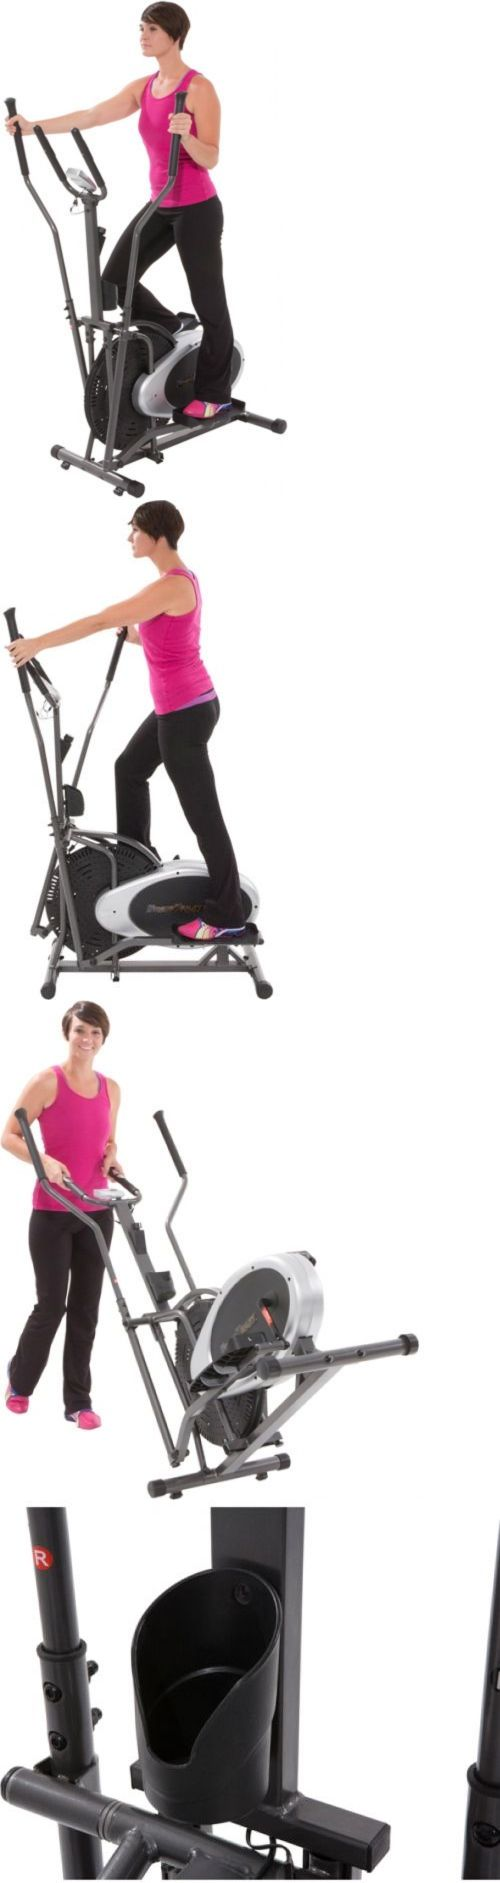 Ellipticals 72602: New Fitness Reality E2000 Durable Fan Elliptical Trainer With Heart Rate System -> BUY IT NOW ONLY: $116.95 on eBay!